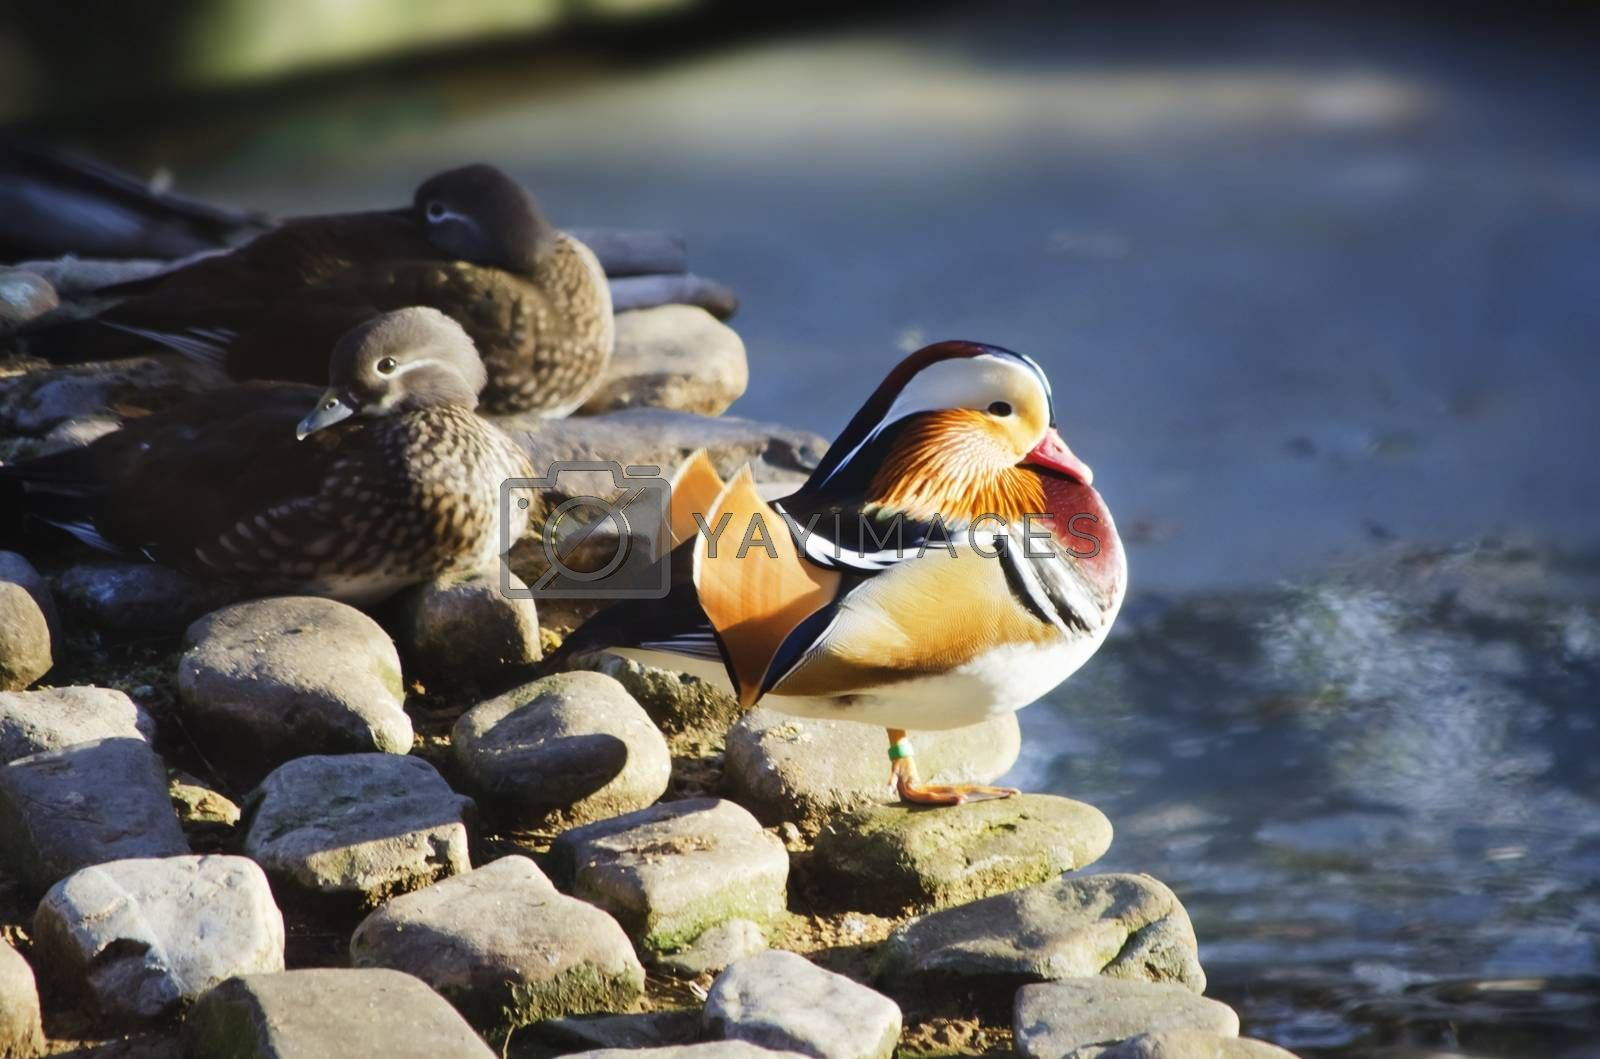 Photo of Mandarin Duck Near Water and Other Birds